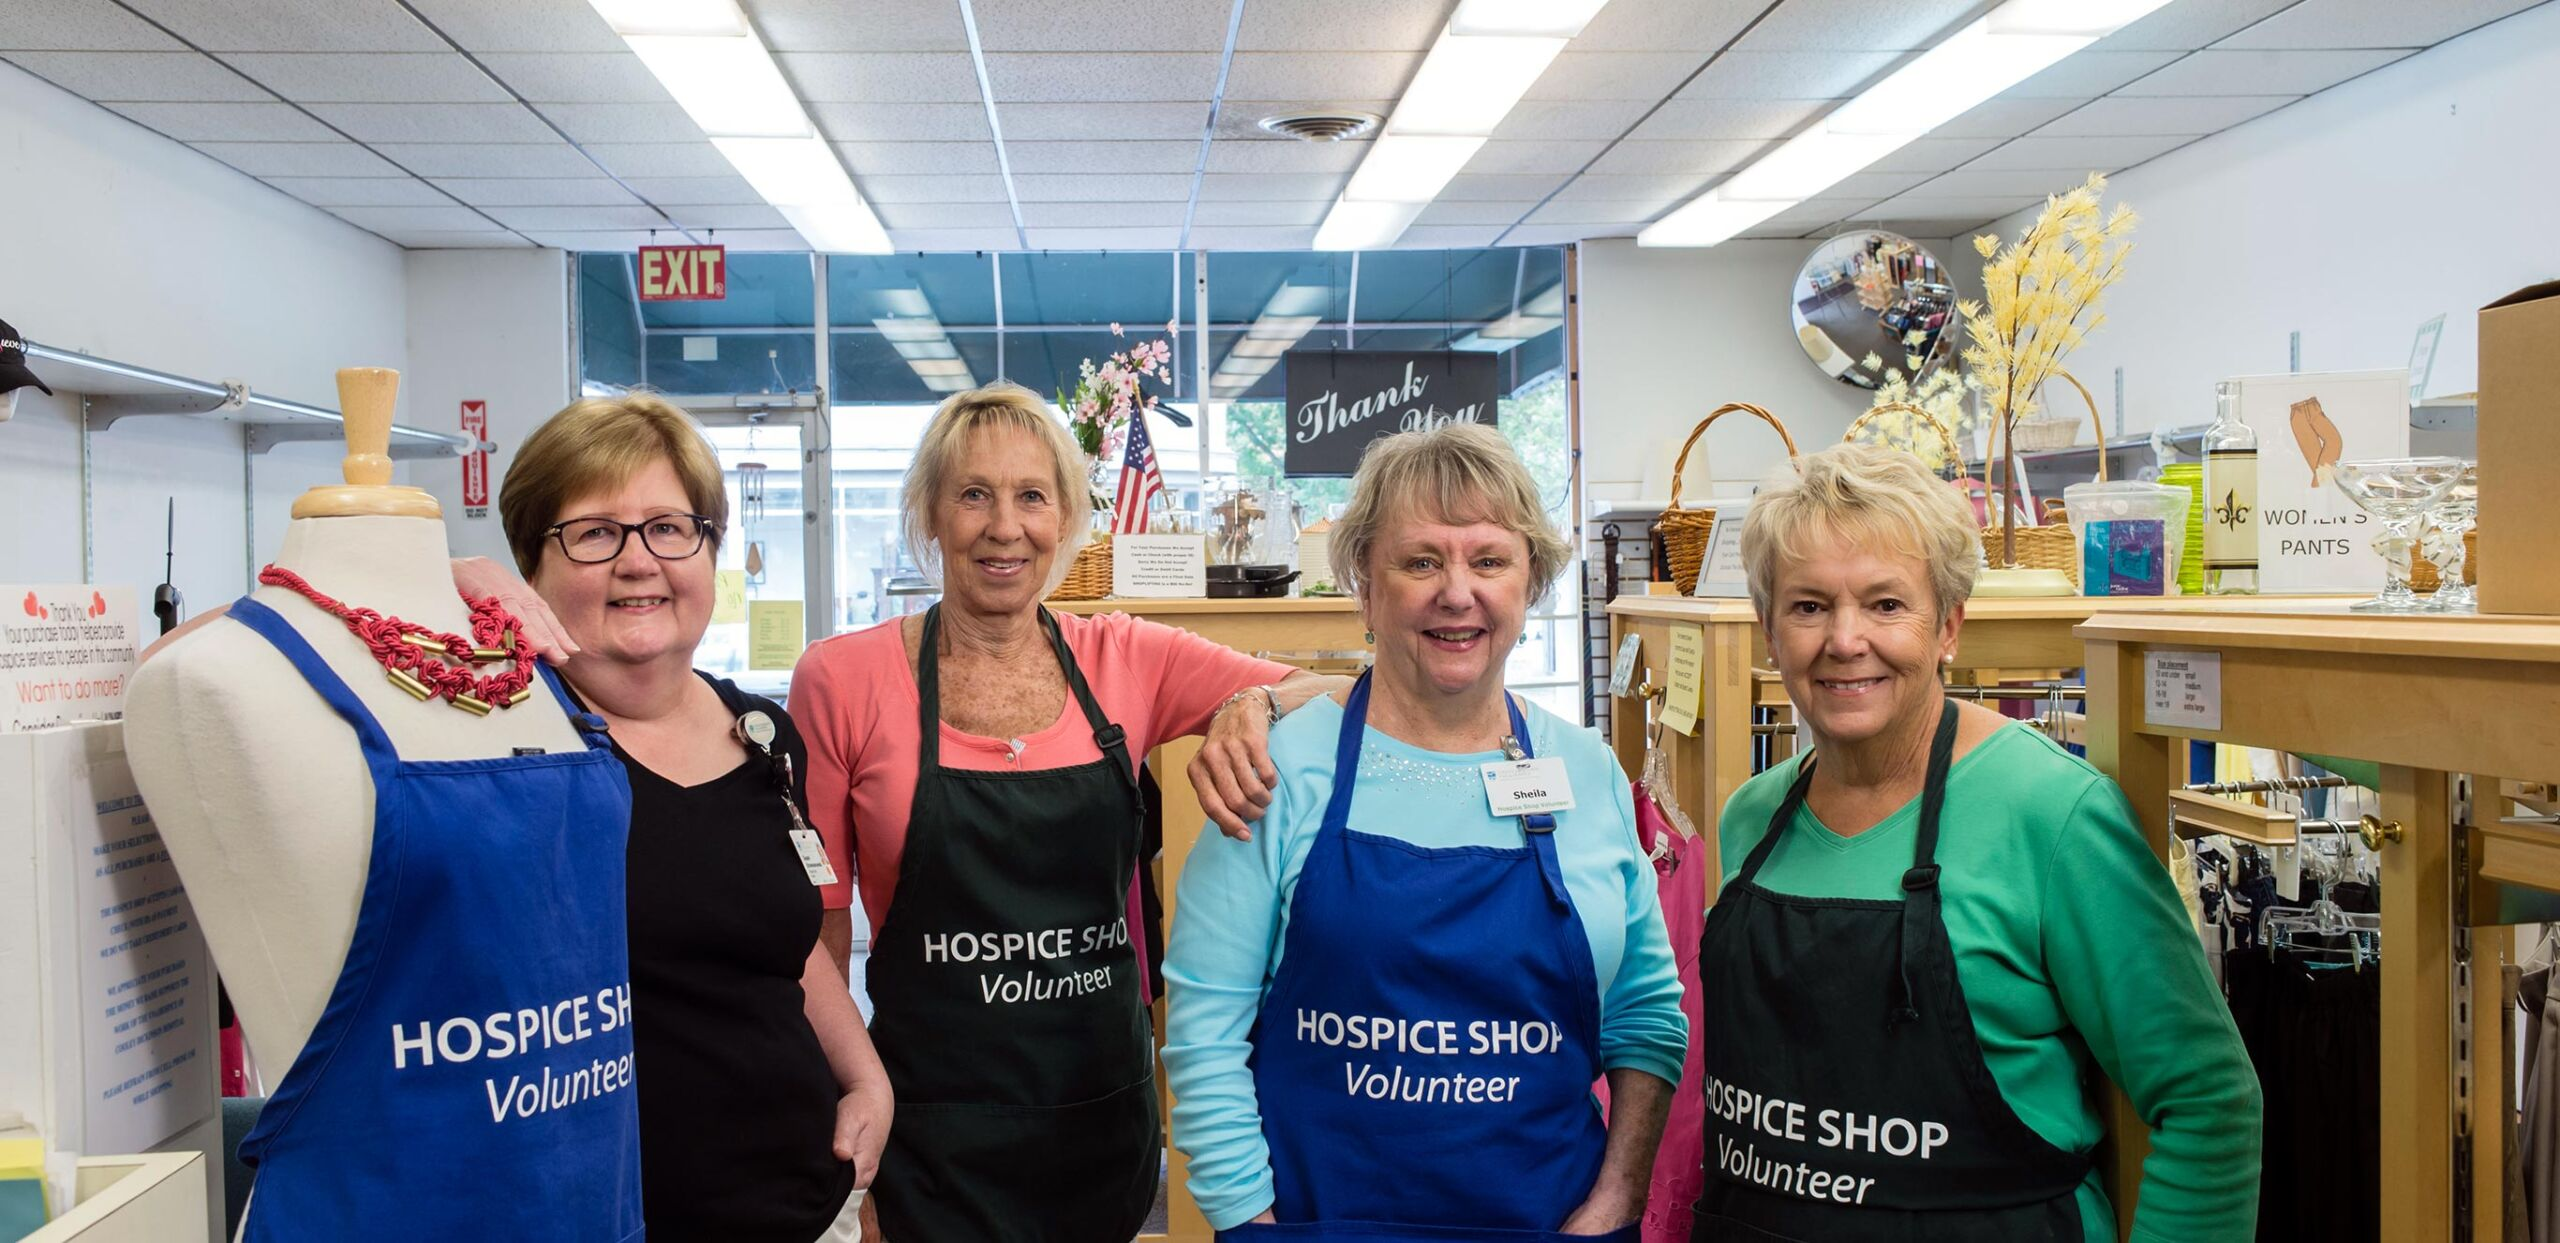 Hospice Shop volunteers, Cooley Dickinson Medical Group VNA and Hospice, Northampton, MA 01060.